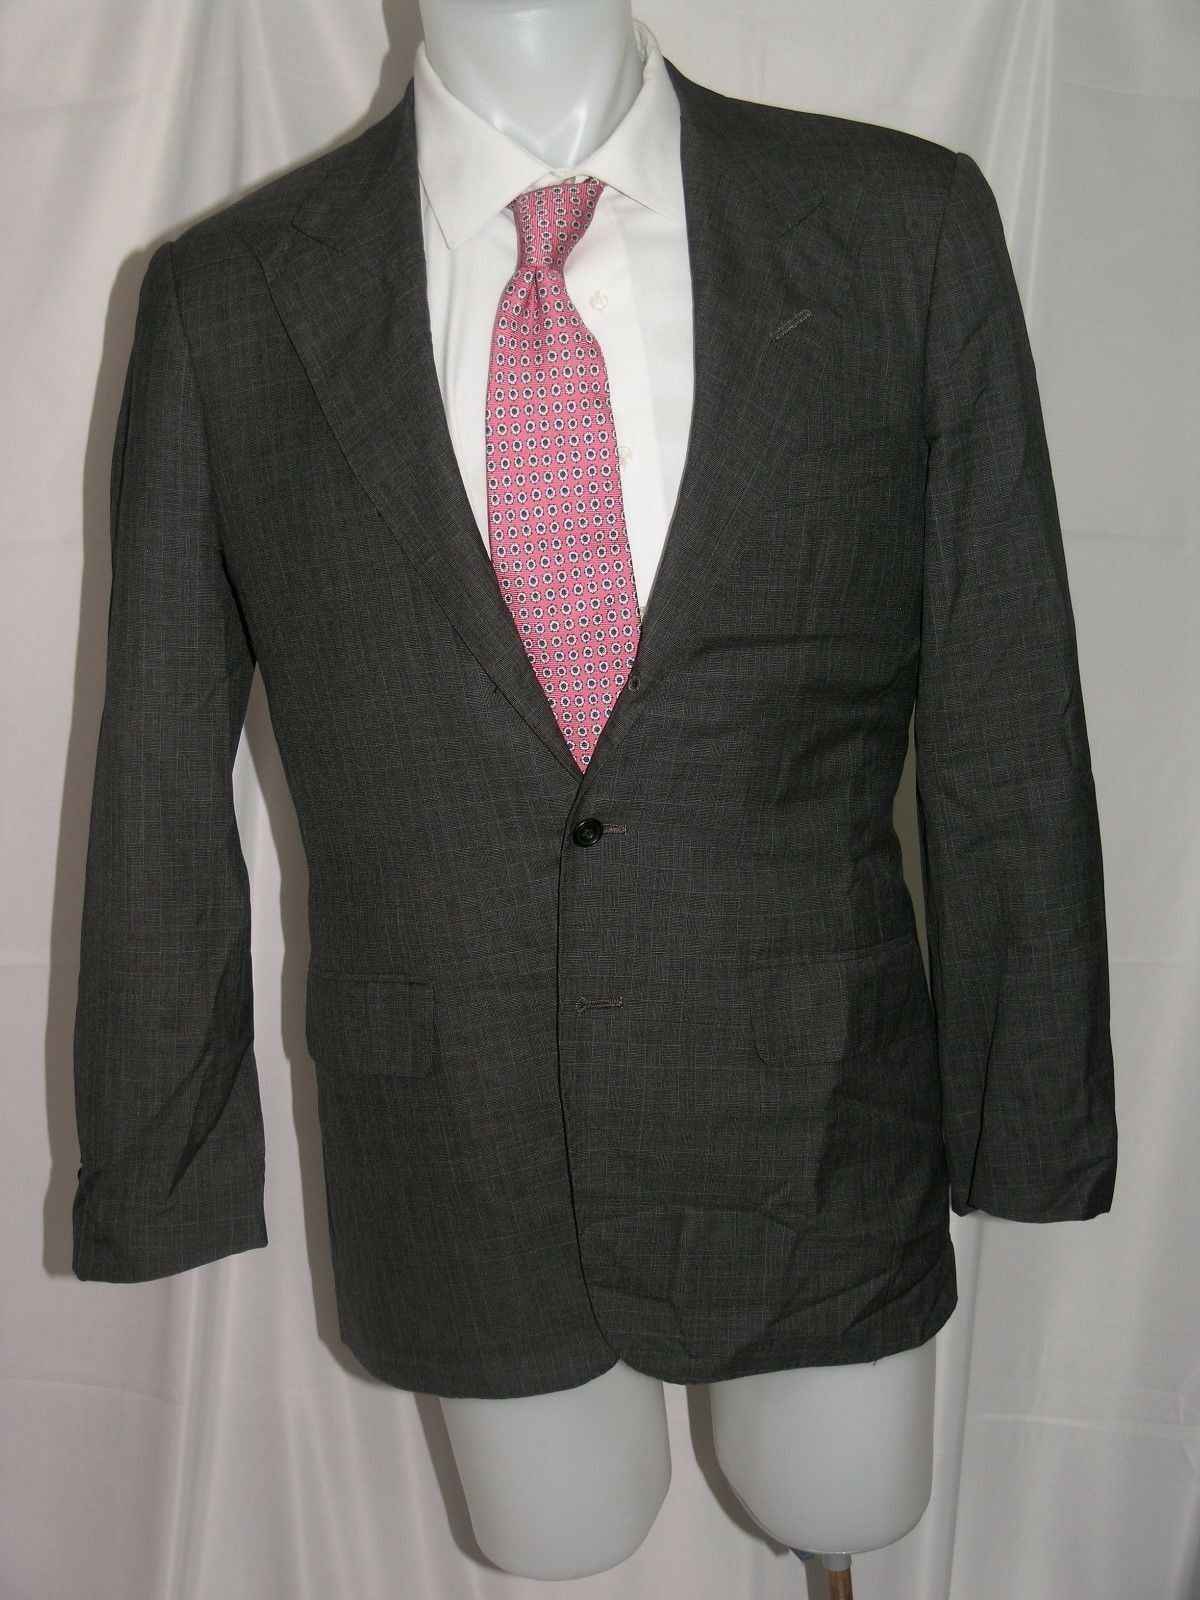 Edgar Pomeroy Bespoke Three-Roll-Two Blazer 40 L